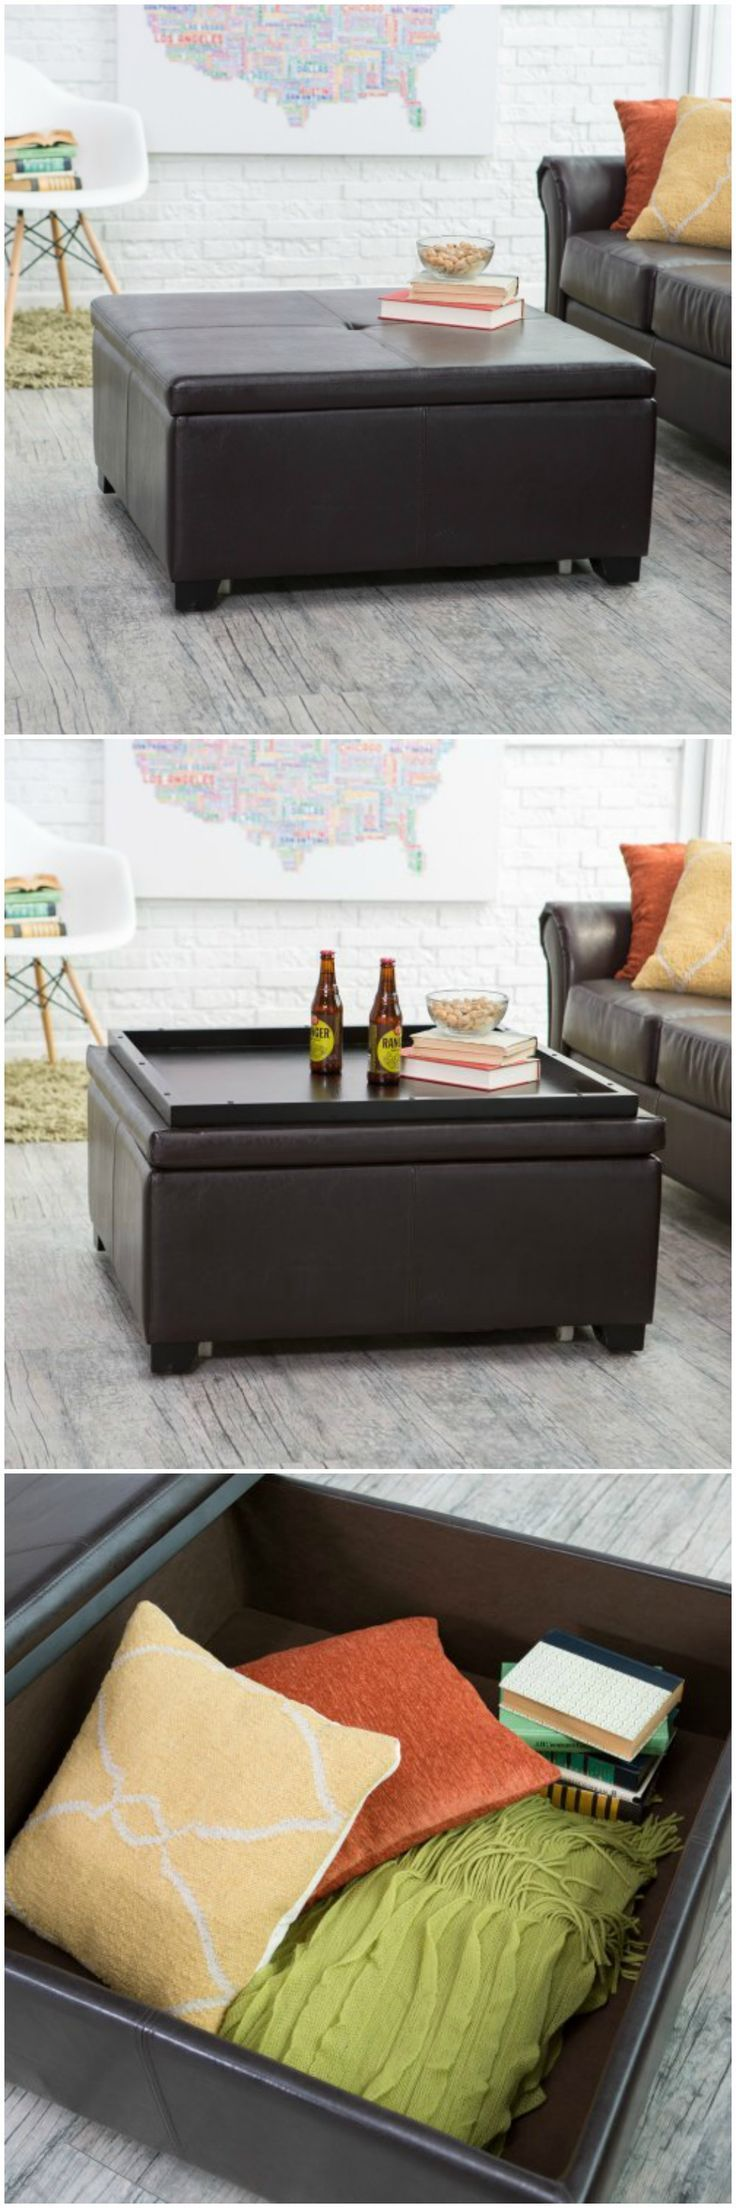 Ottoman, coffee table, storage.                                                                                                                                                                                 More